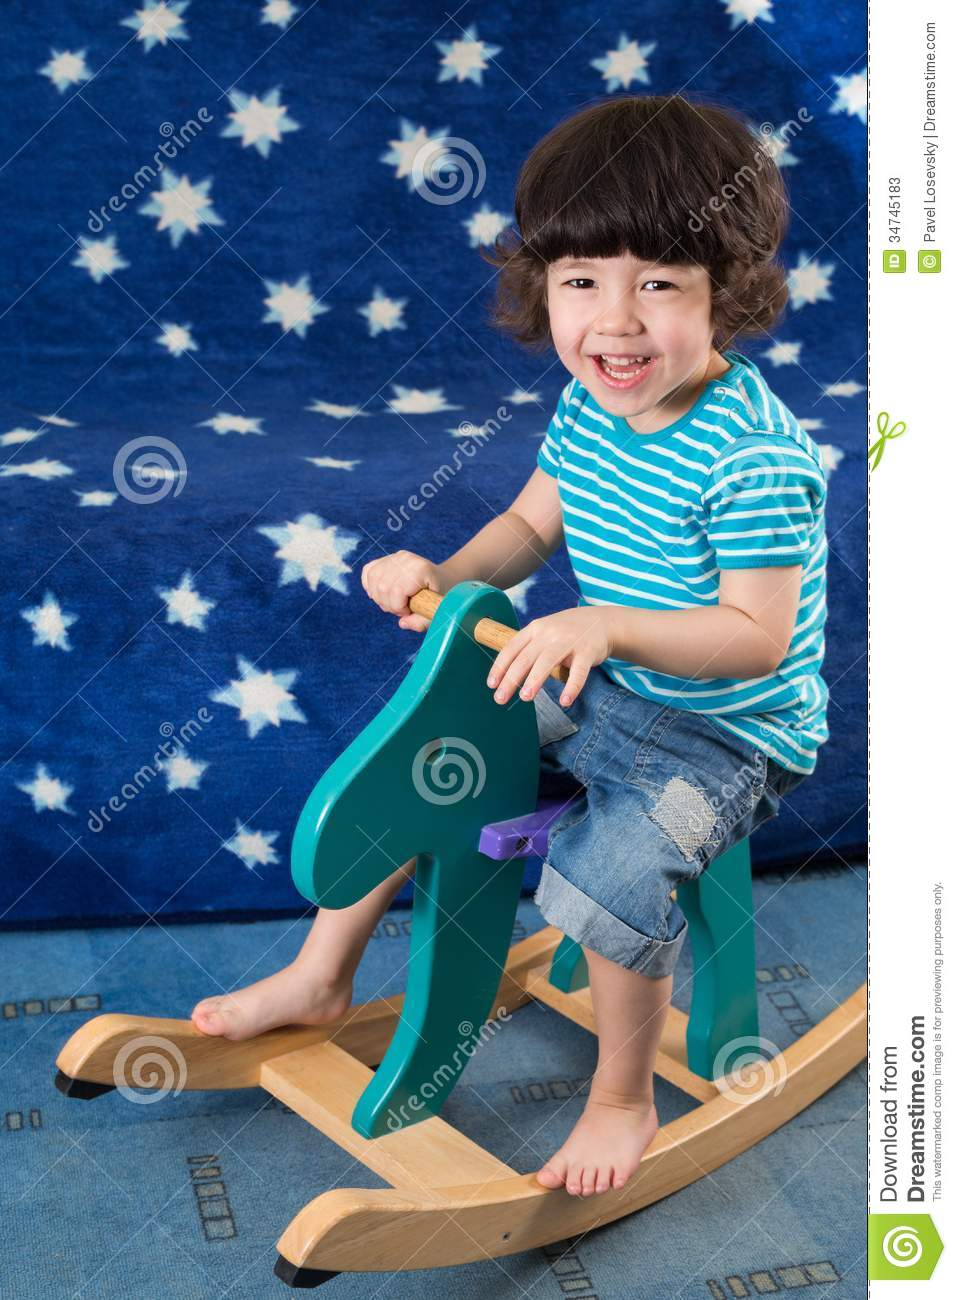 Download Smiling Little Boy Have Fun On A Toy Horse Stock Image - Image of beautiful, little: 34745183